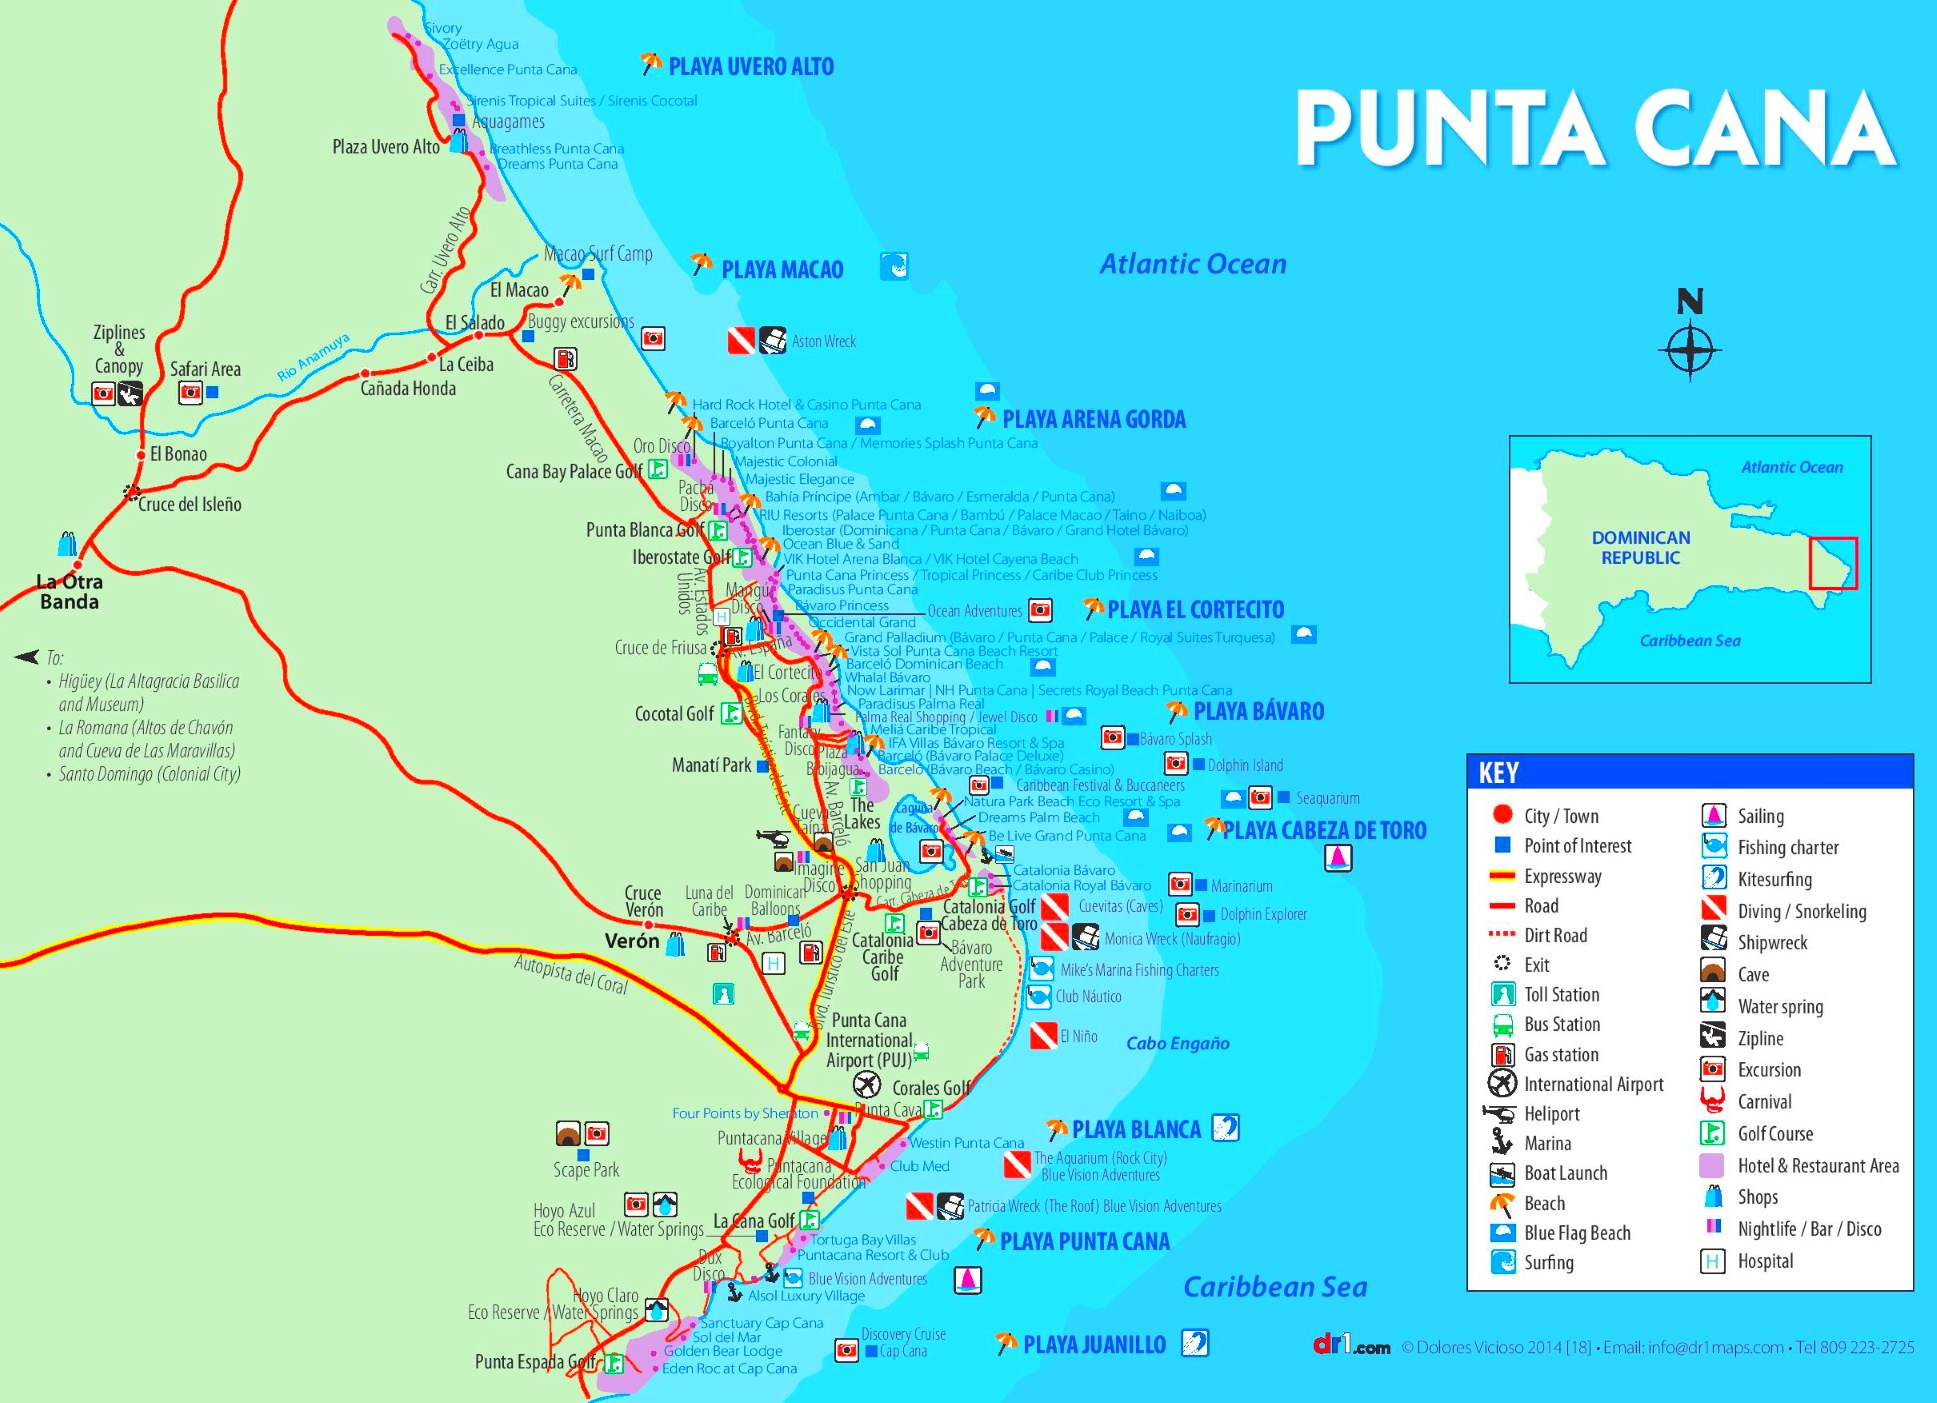 Punta Cana On Map Punta Cana hotel map Punta Cana On Map